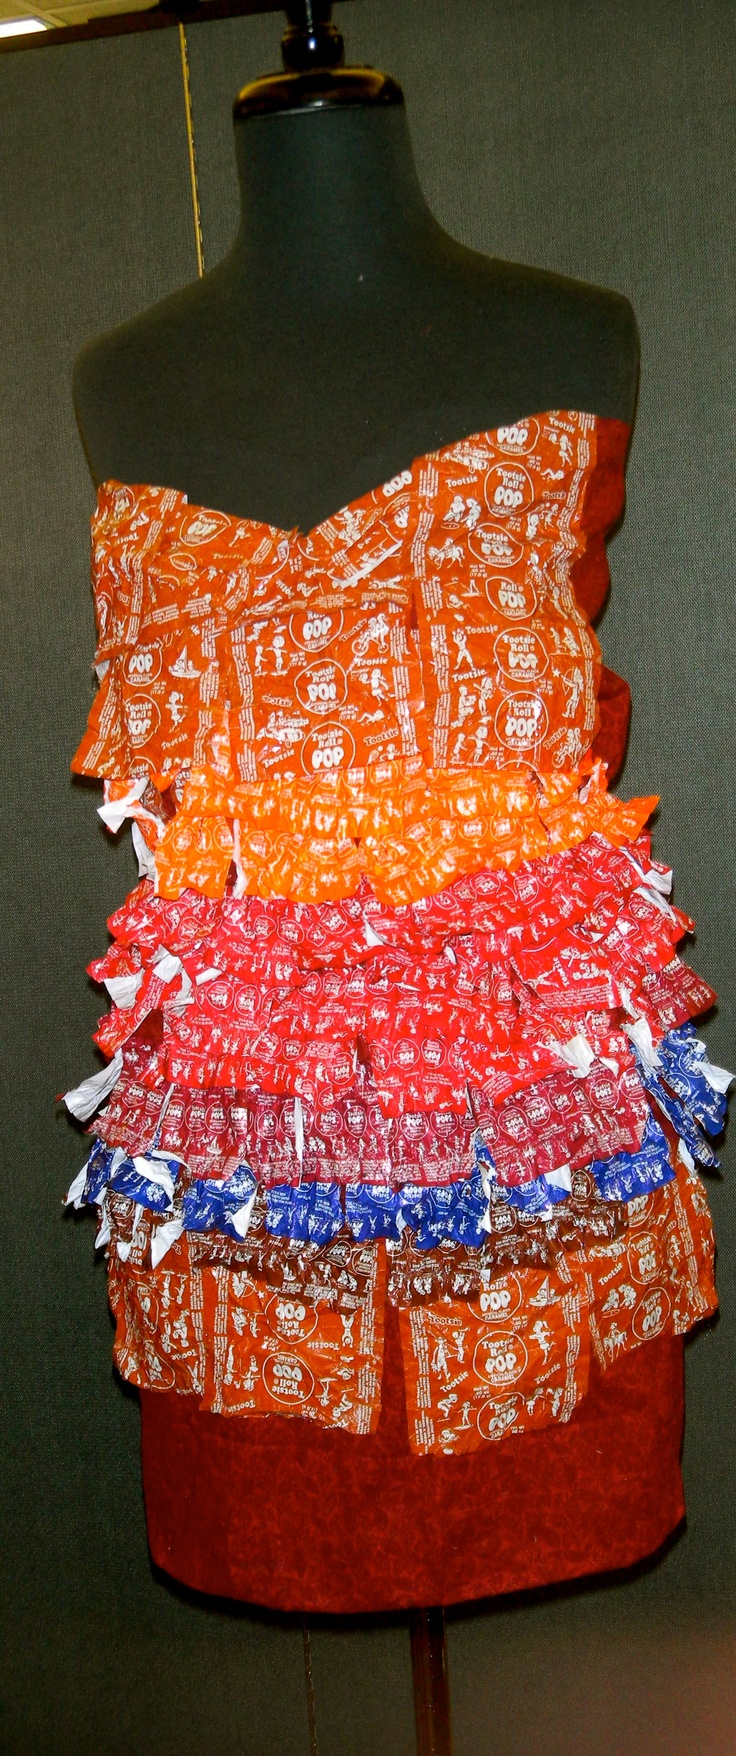 17 Best images about Trashion Fashion on